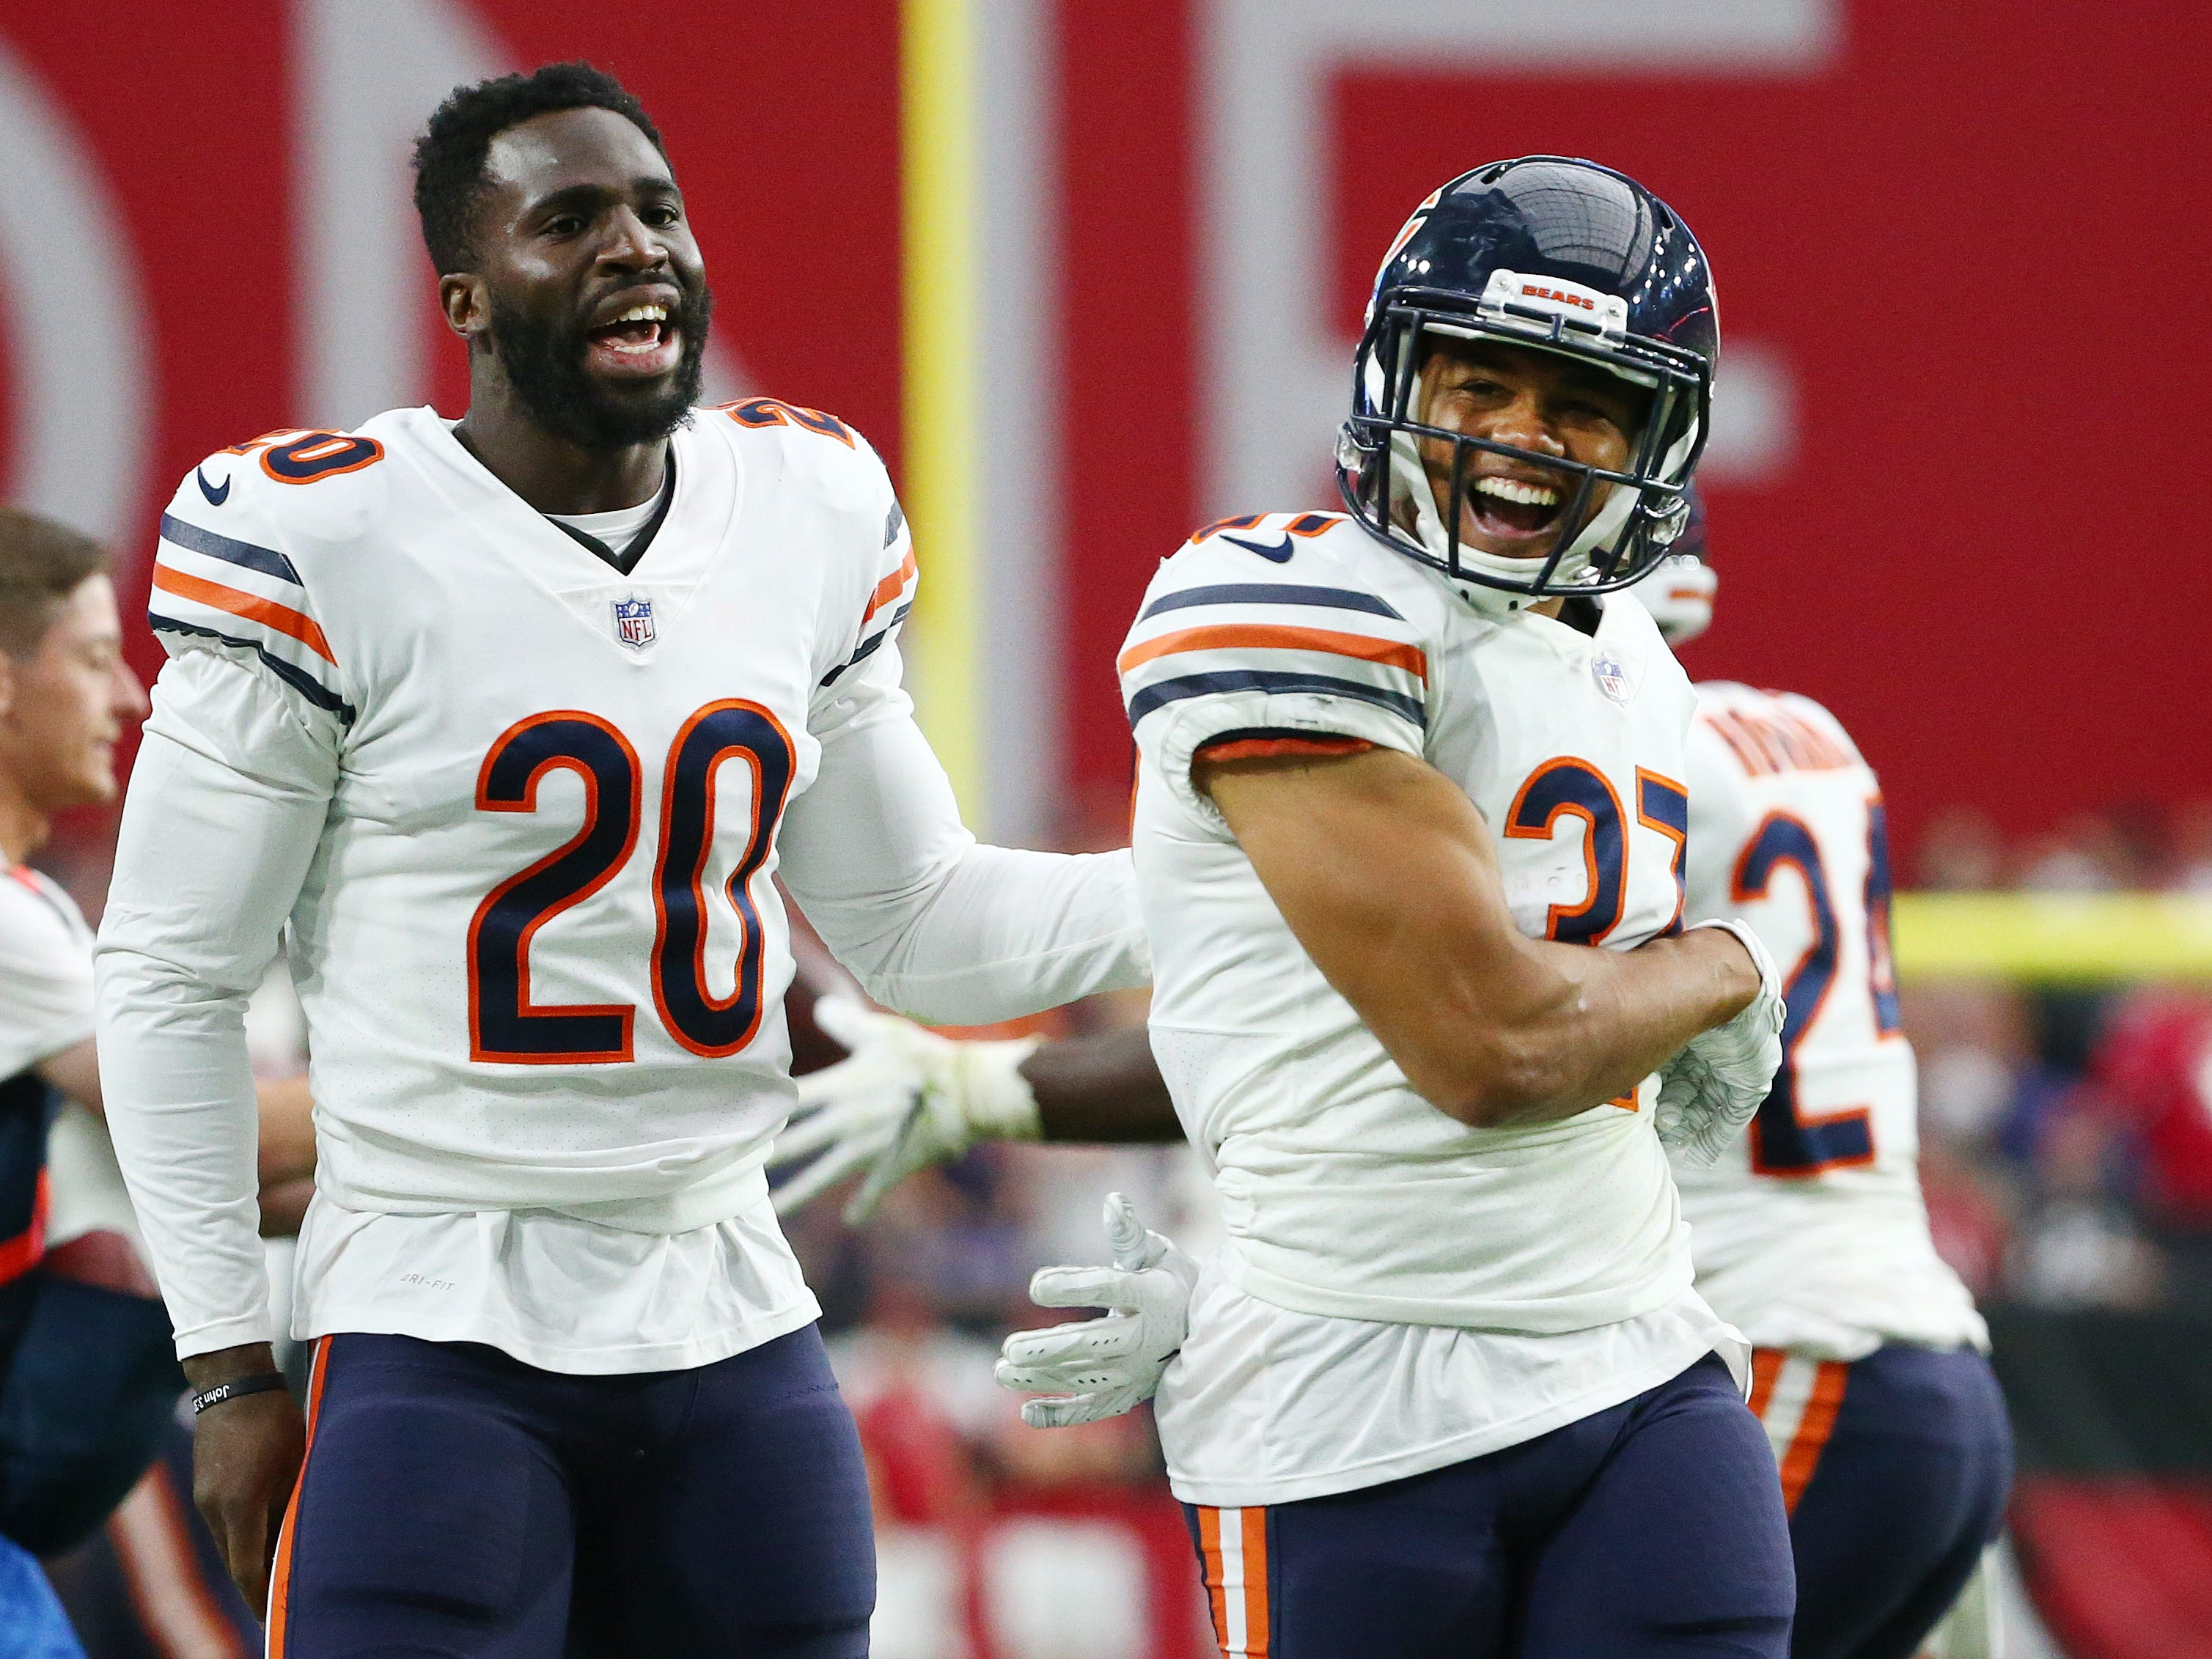 Chicago Bears Bryce Callahan (37) celebrates after intercepting a pass from Arizona Cardinals Josh Rosen in the second half at State Farm Stadium in Glendale, Ariz.